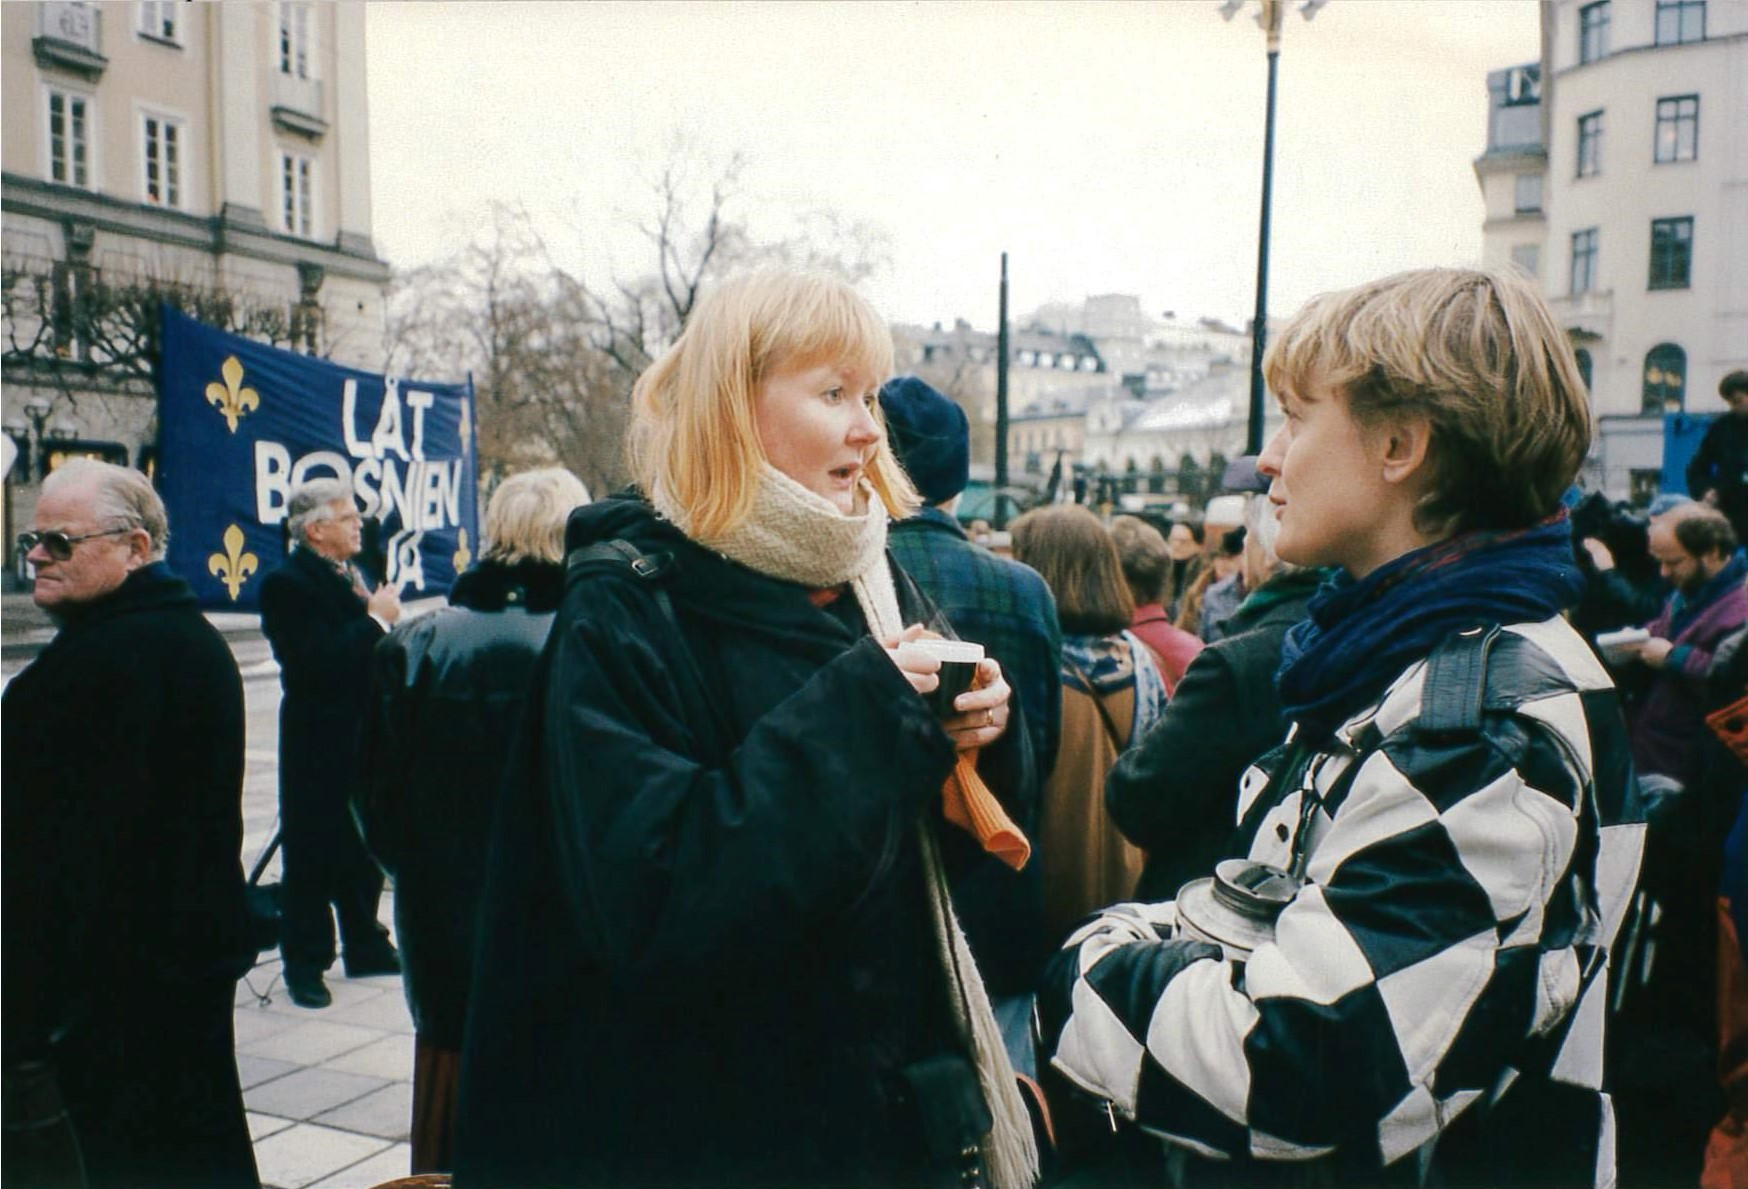 Eva Zillén at one of the gatherings on Norrmalm square in Stockholm, 1993.